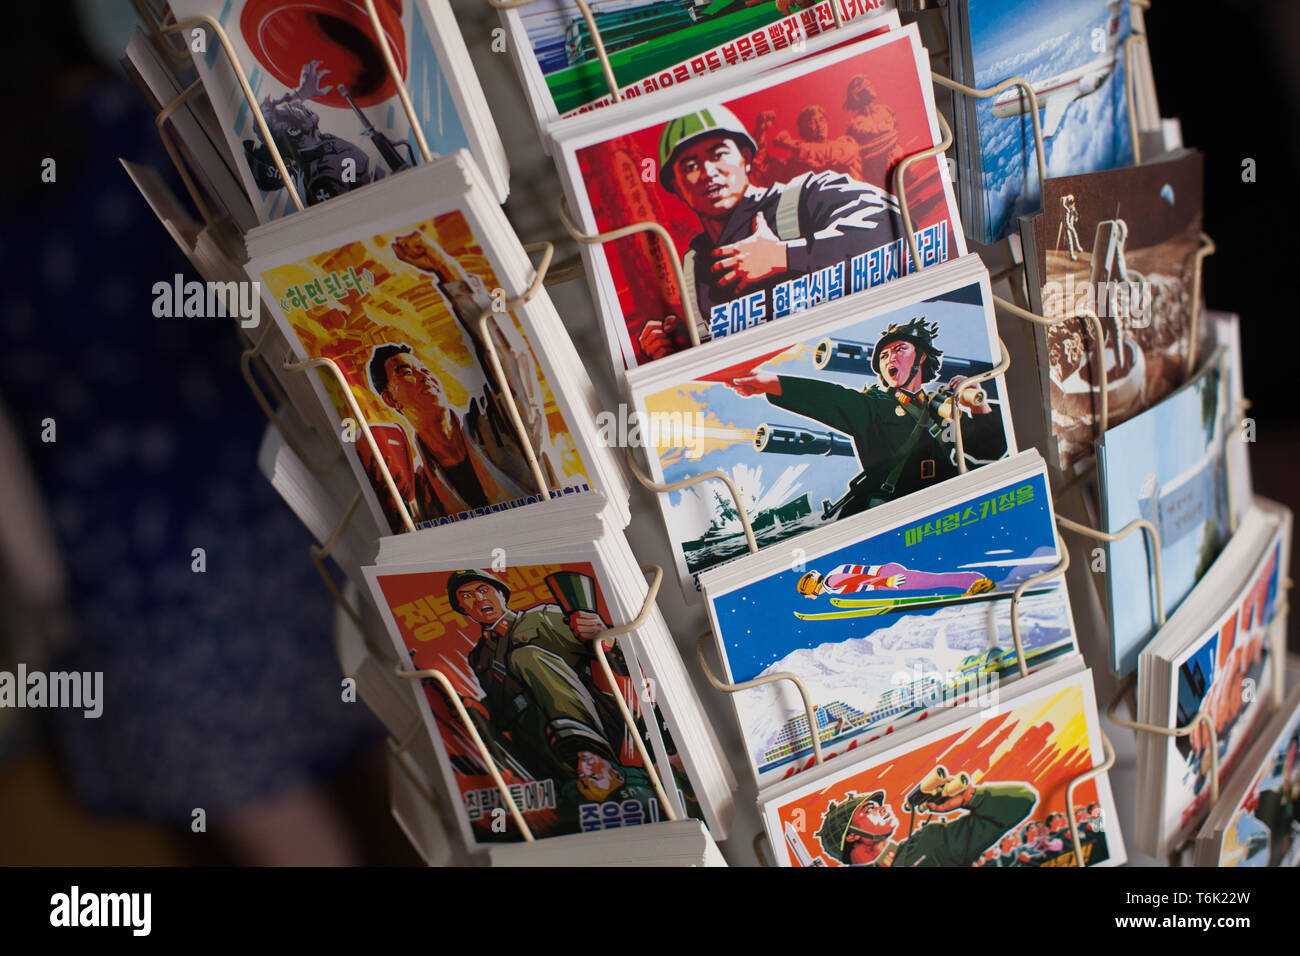 Postcards for sale to tourists in DPRK with graphic propaganda and political messages. - Stock Image